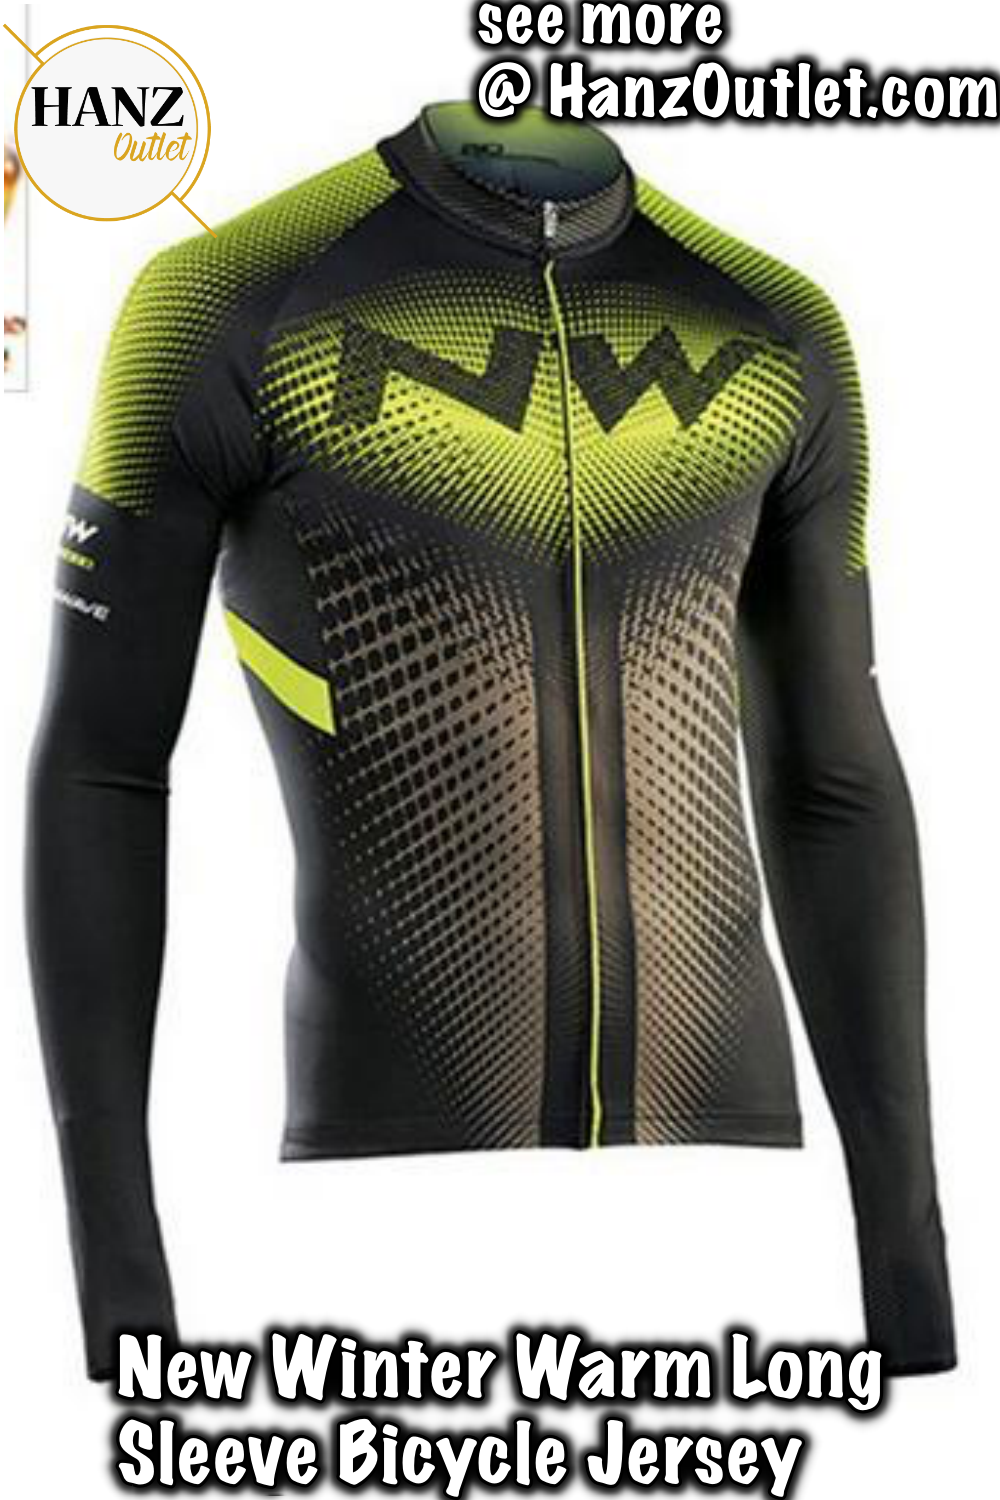 3f11f78e6 New Winter Warm Long Sleeve Bicycle Jersey Thermal Fleece Ropa Ciclismo  Maillot Men s Pro Team MTB Bike Cycling Clothing  WinterJersey   BicycleJersey ...